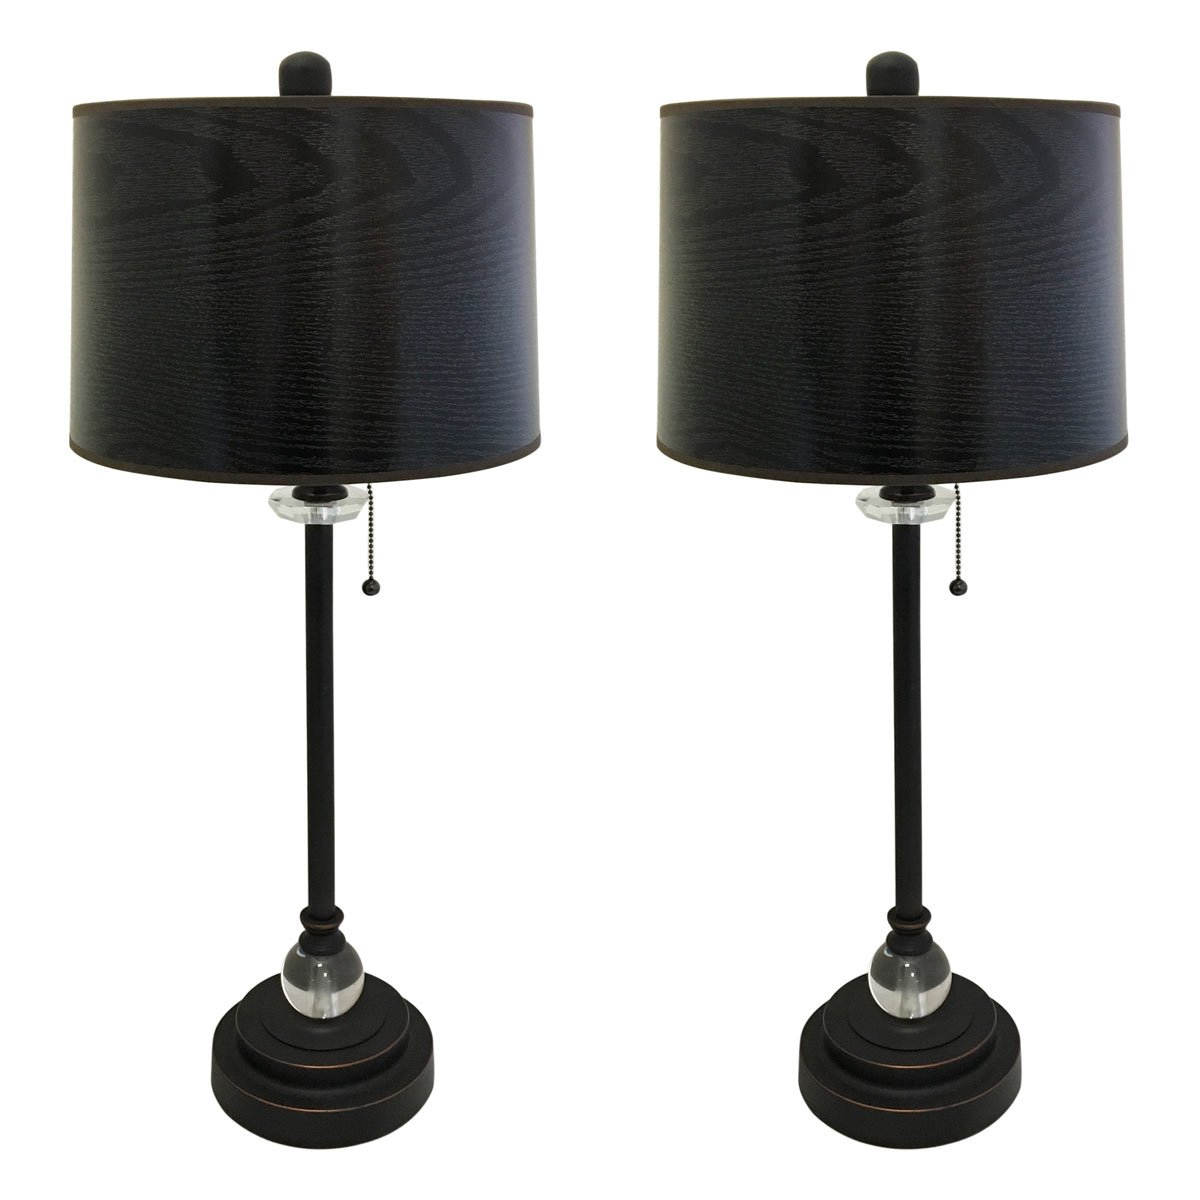 Royal Designs 28'' Crystal and Oil Rub Bronze Lamp with Black Wood Texture Hardback Lamp Shade, Set of 2 by Royal Designs, Inc